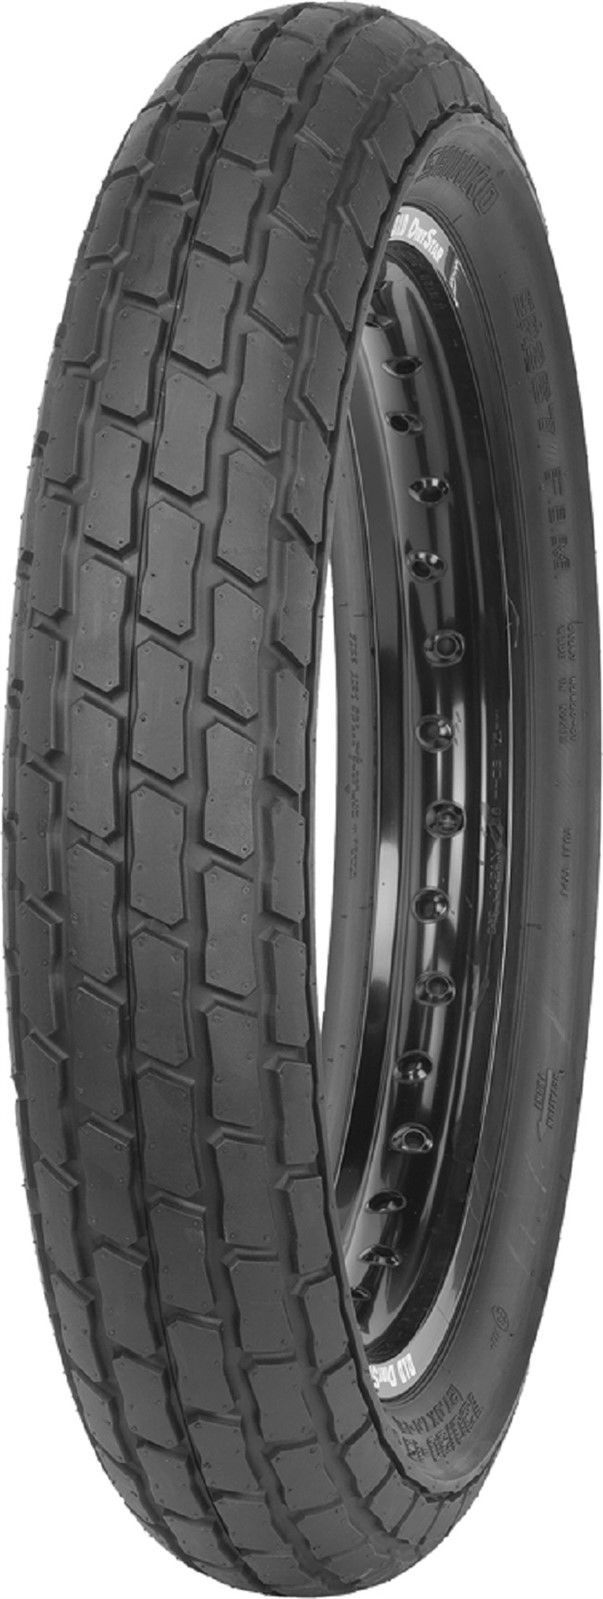 New Shinko SR267 Front 130/80-19 Soft Compound Flat Track Racing  67H DOT